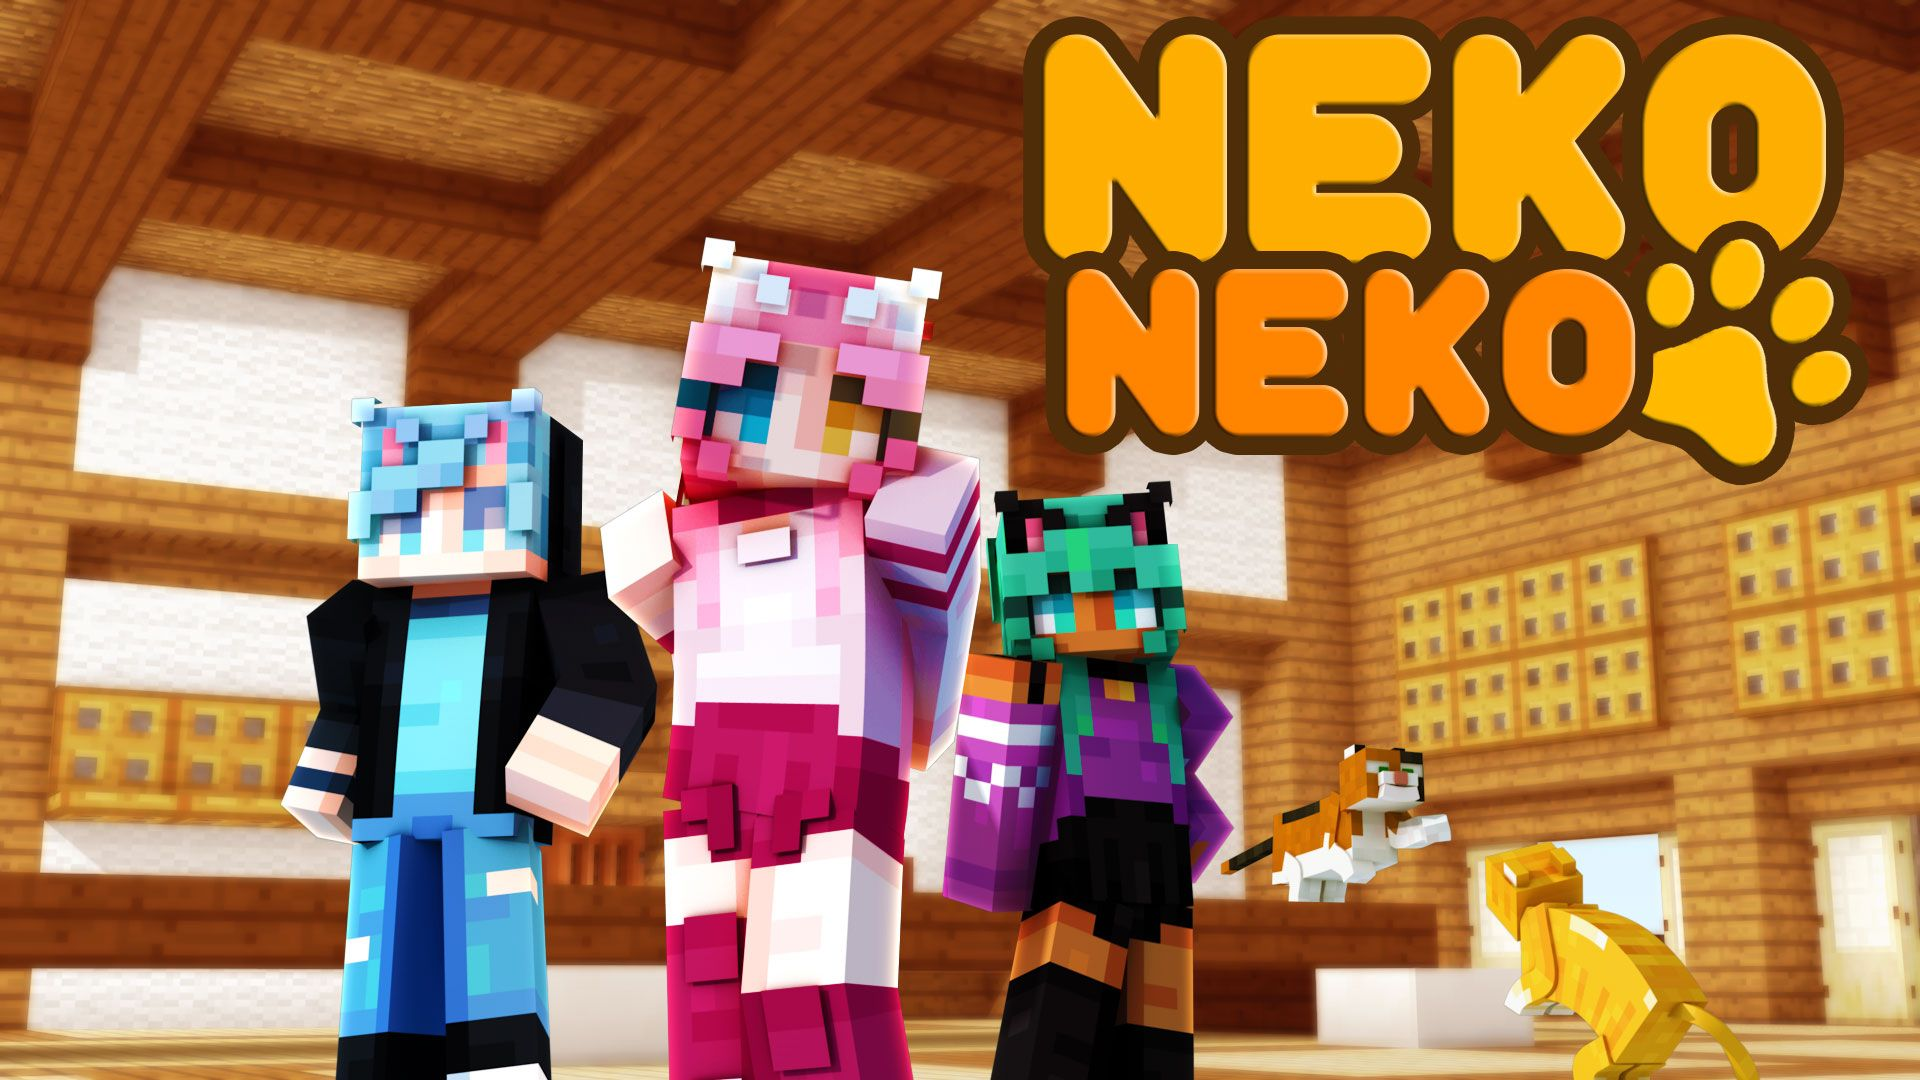 Neko Neko Minecraft Skin Pack In 2020 Neko Minecraft Skin Game Store